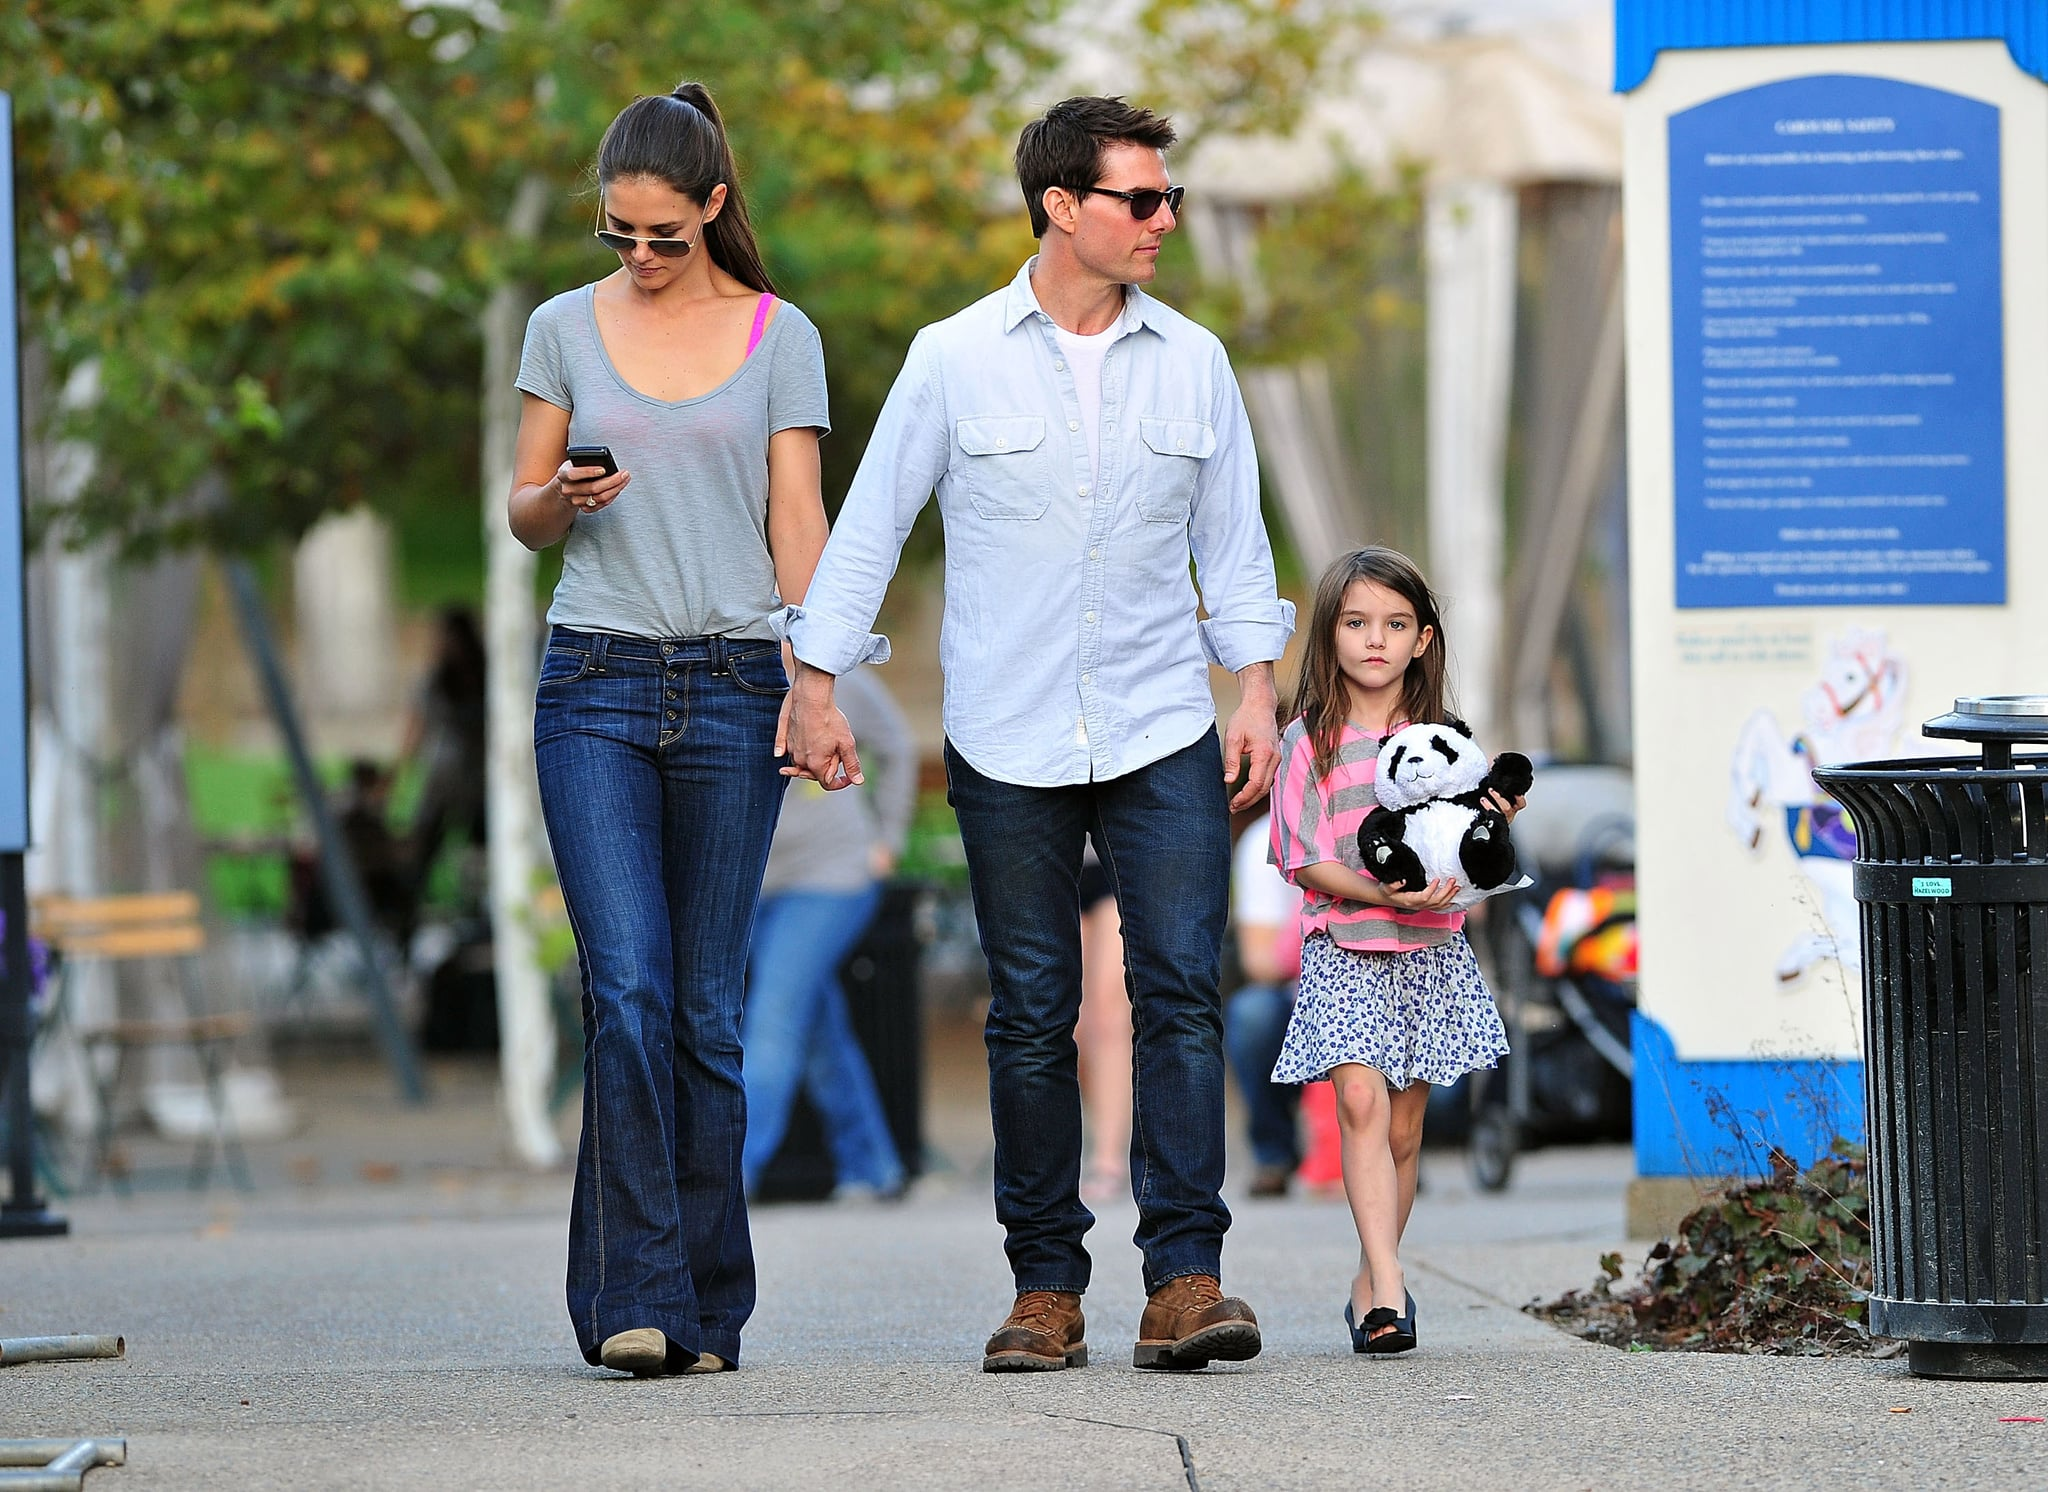 Tom Cruise and Katie Holmes walked around Pittsburg with Suri Cruise.     Suri Cruise Pushes Her Stroller Out With Tom and Katie in PA    POPSUGAR Celebrity Photo 6